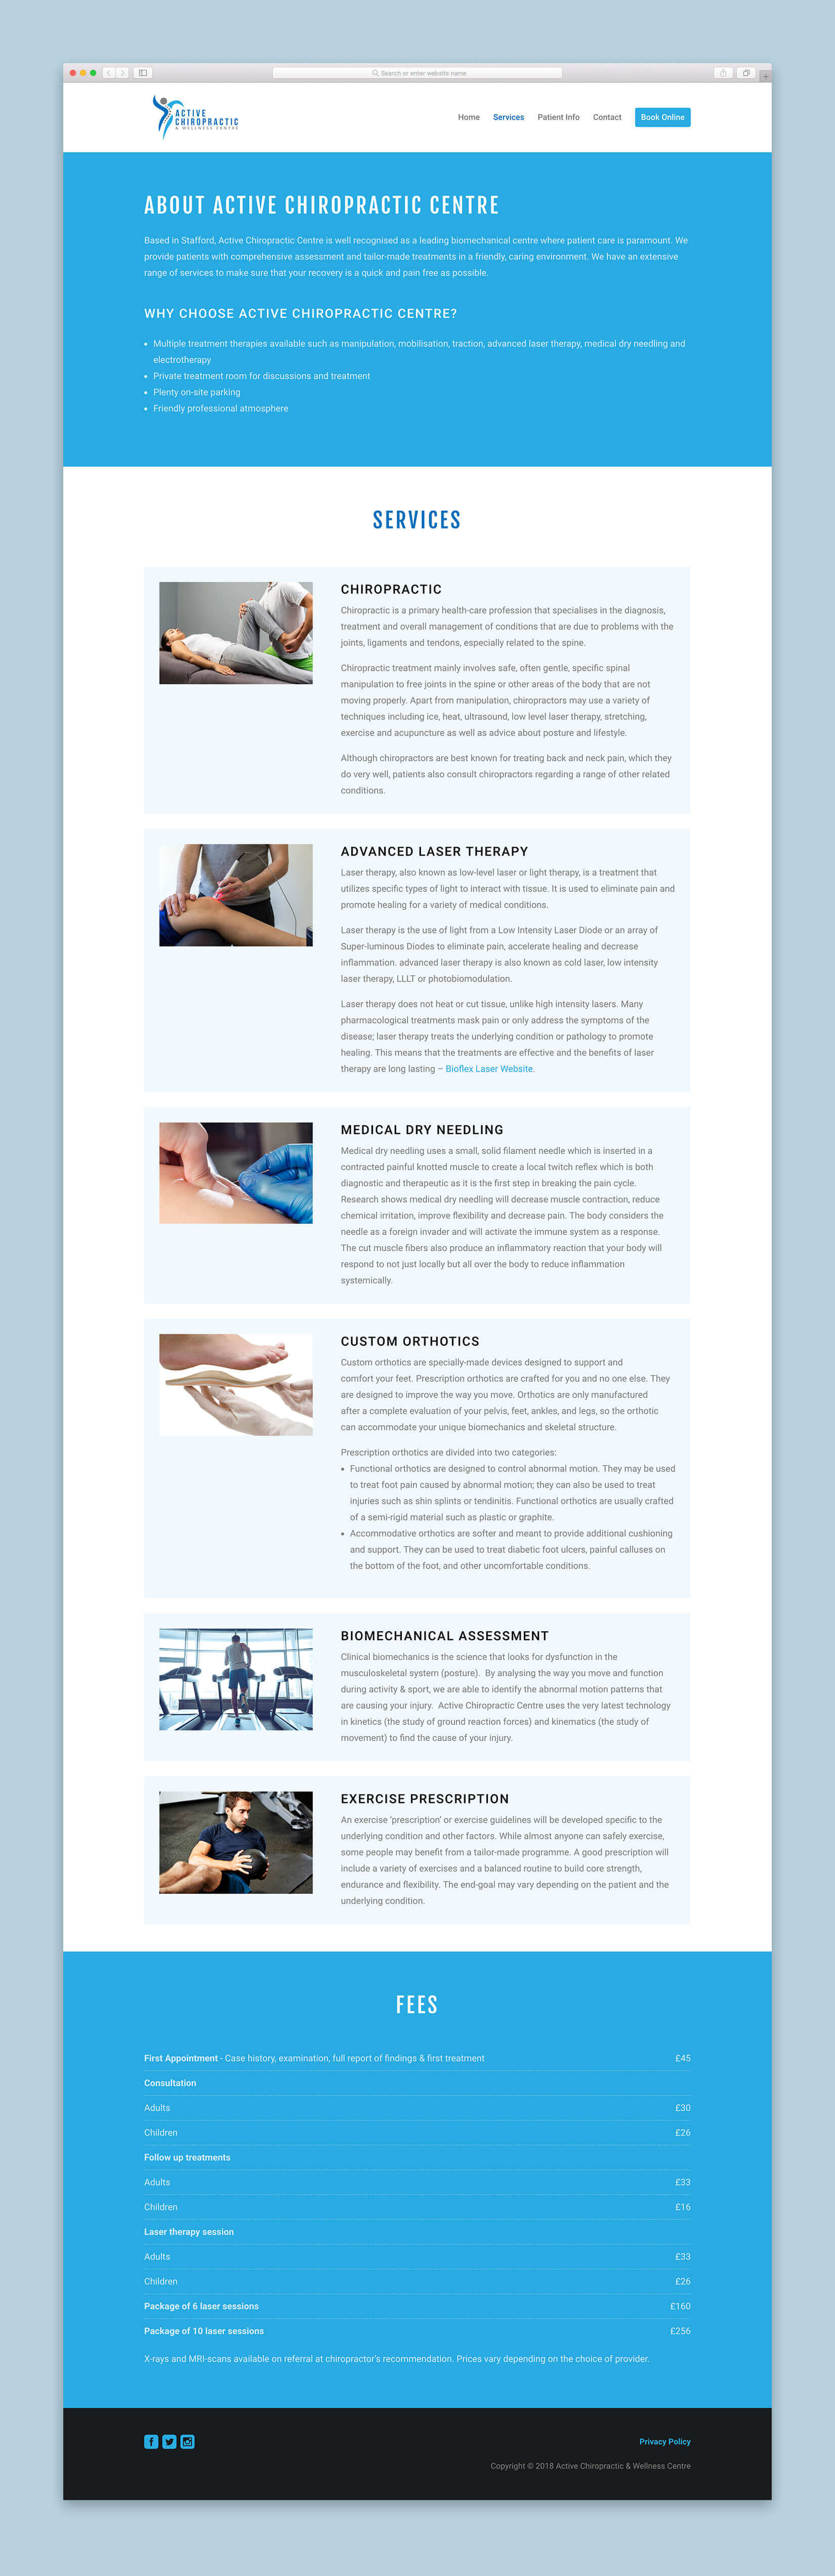 Active Chiropractic Website About Page